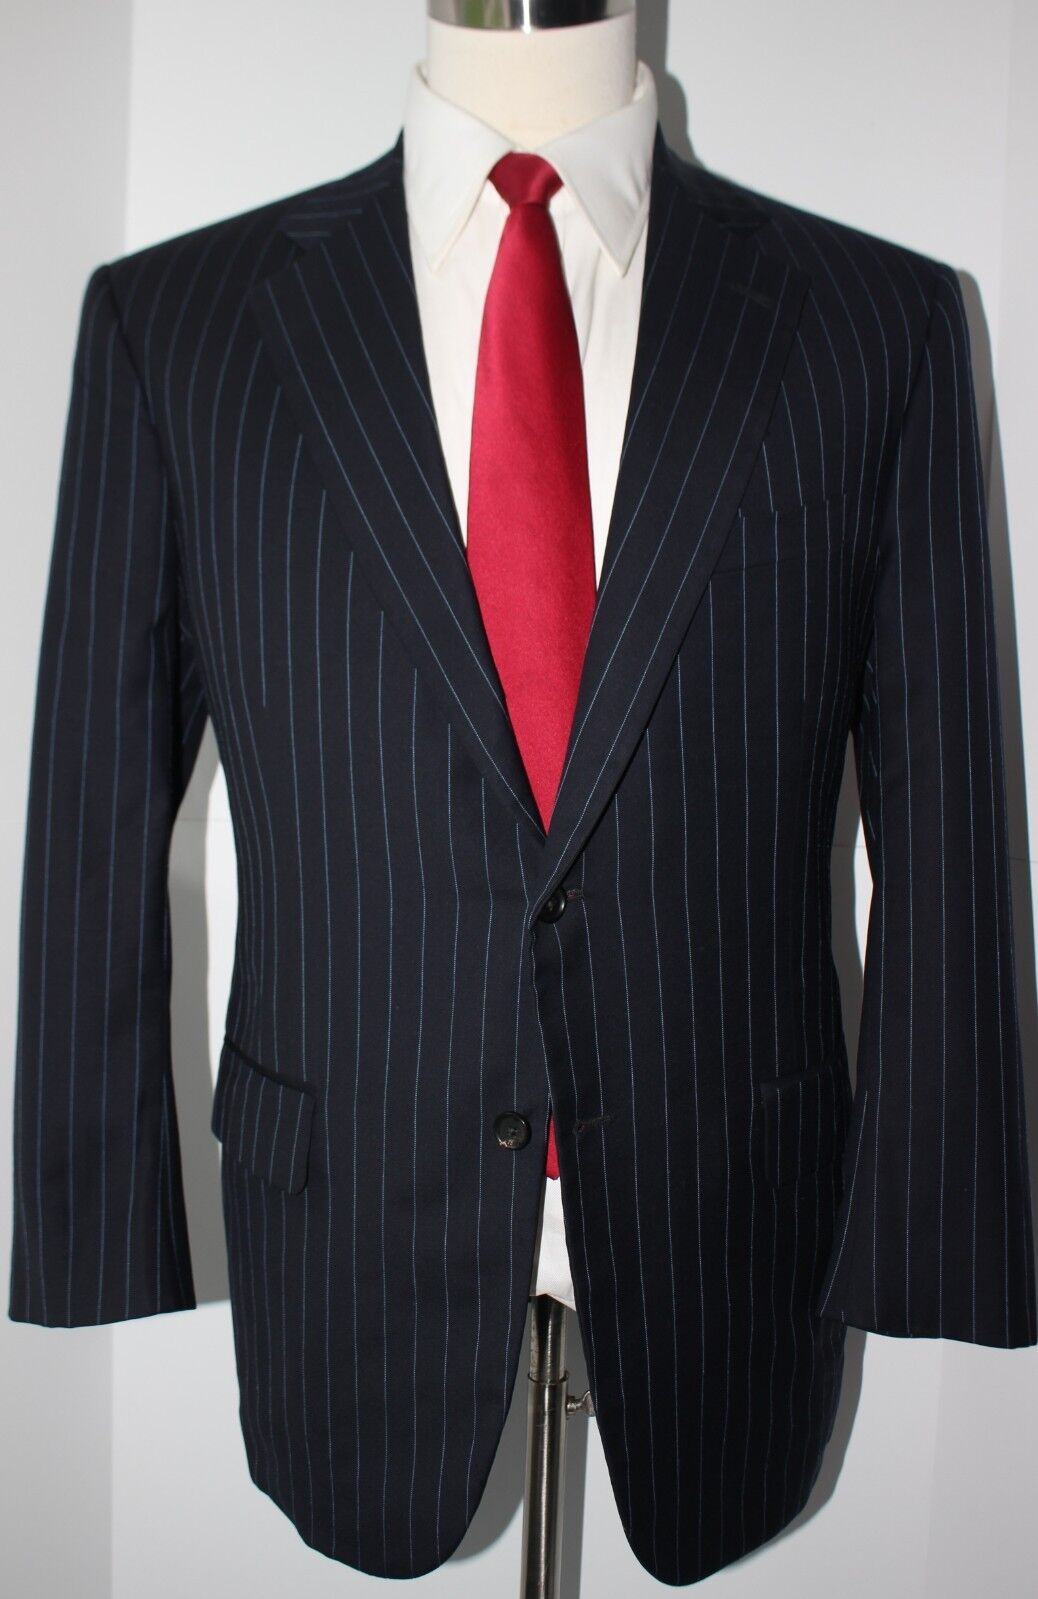 Brooks Brothers Golden Fleece Blau Striped 2 Button Wool Suit 41 R 35 30 Pants